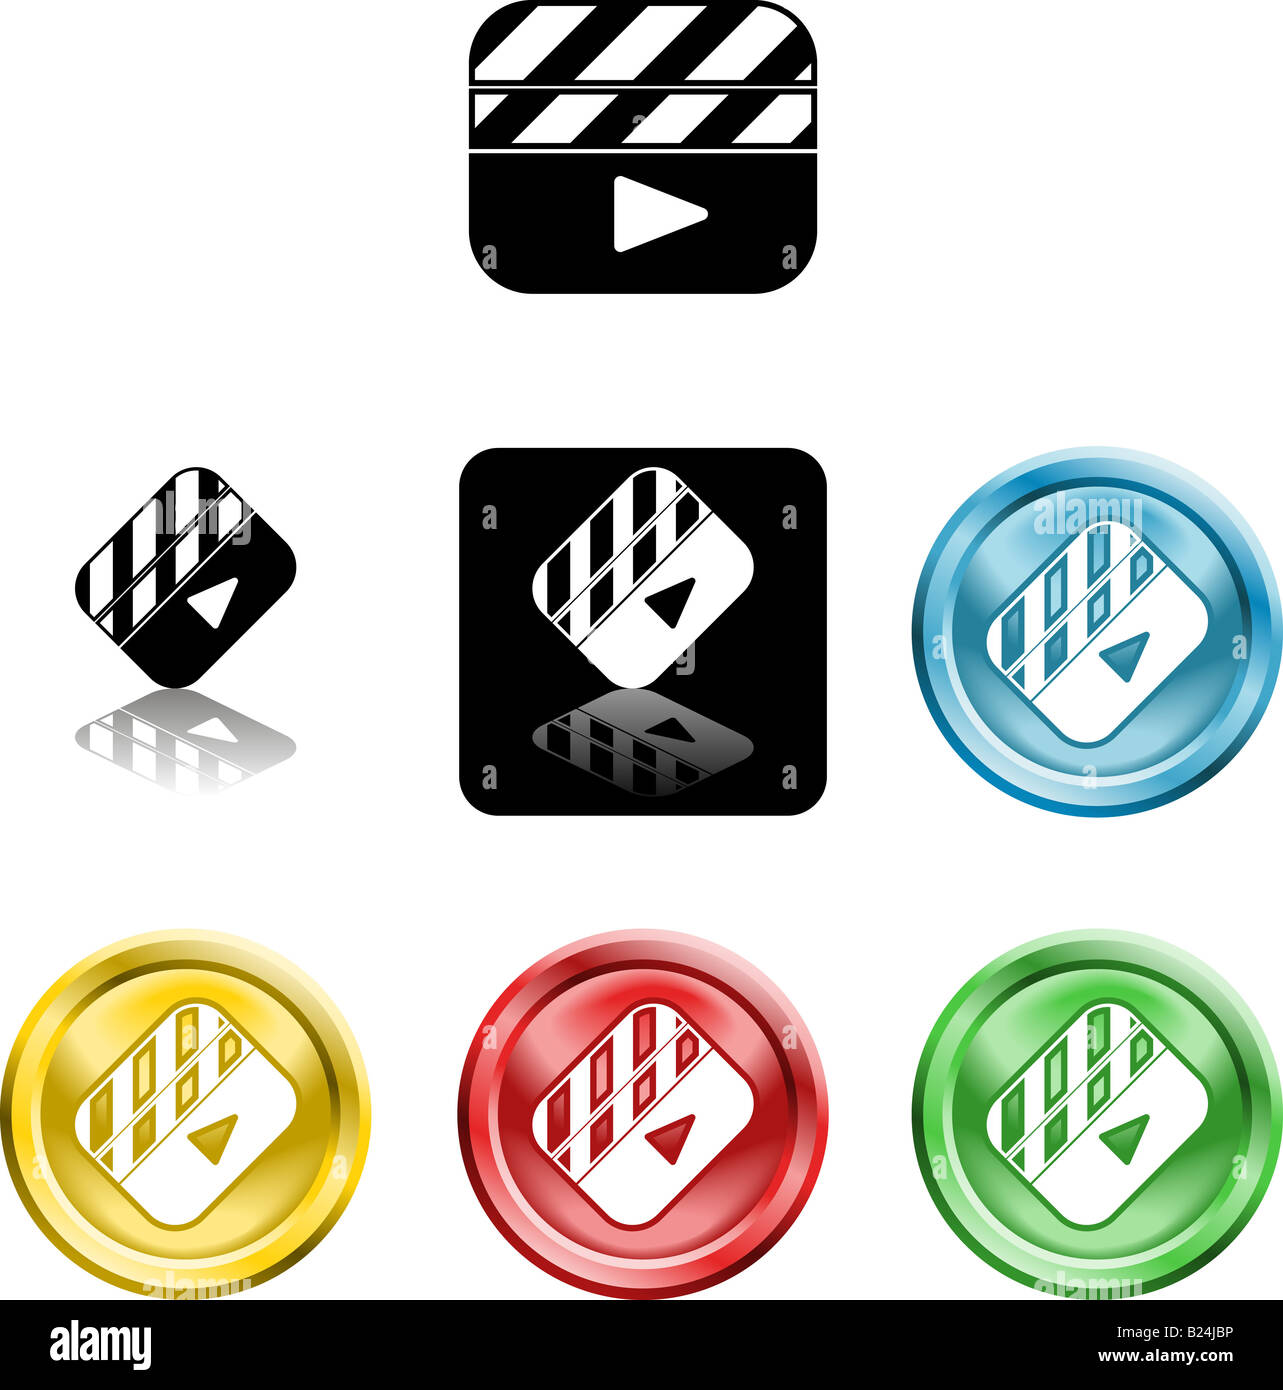 Several versions of an icon symbol of a stylised film clapper board - Stock Image